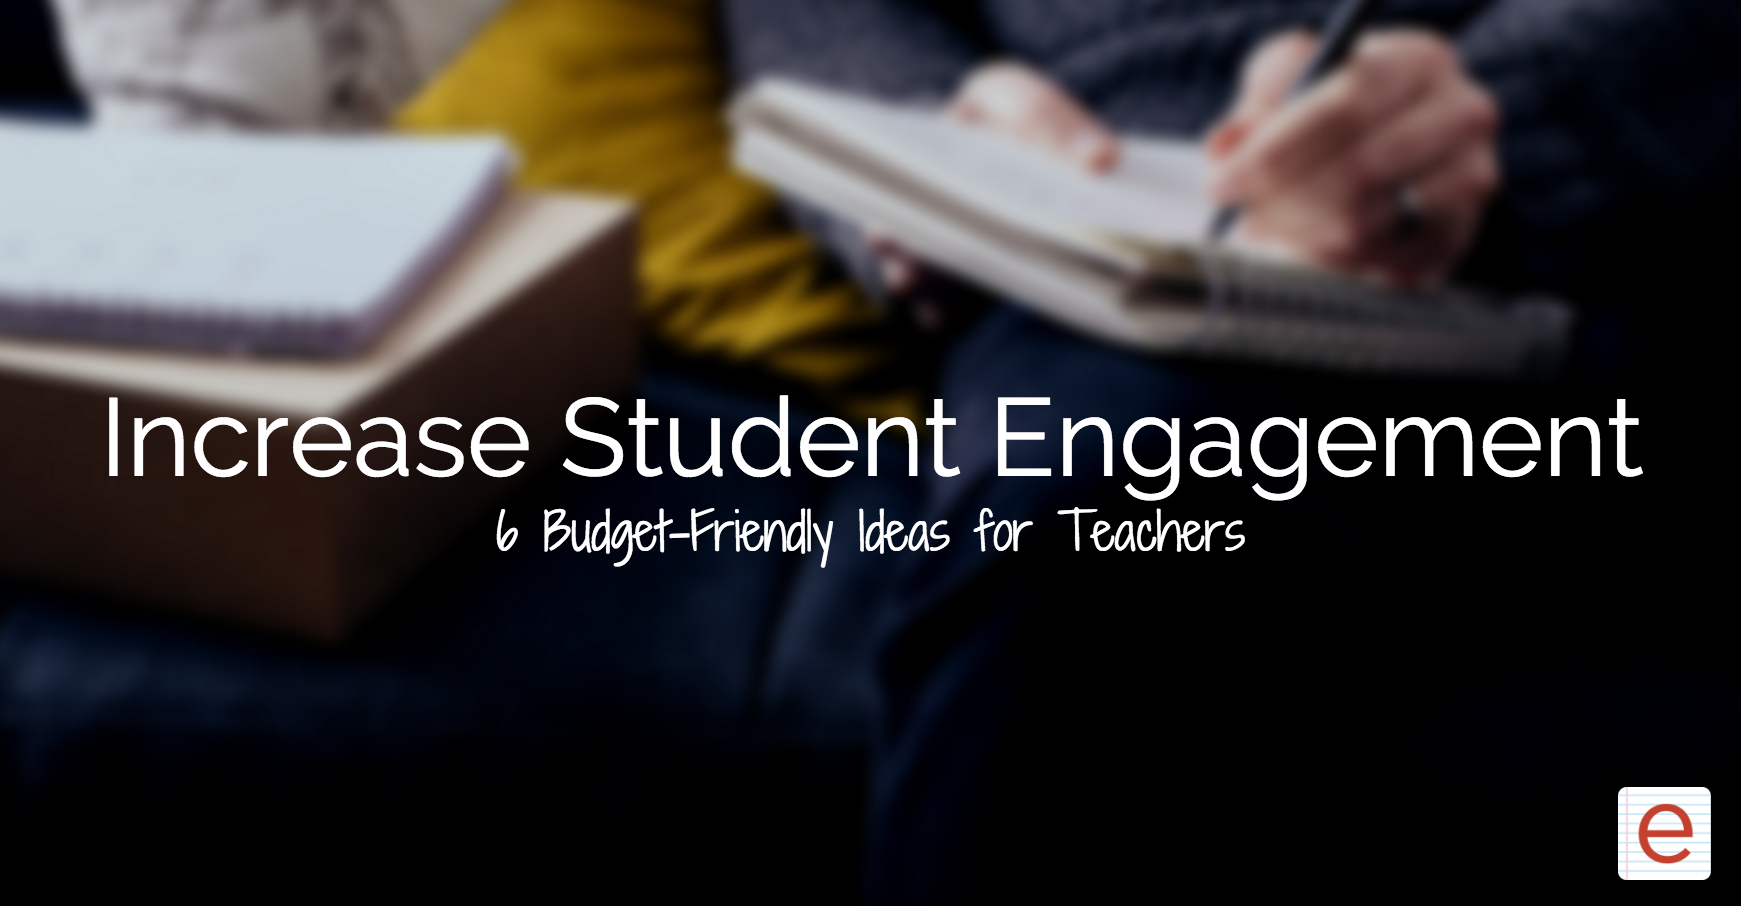 6 Budget-Friendly Ideas to Keep Your Students Engaged this Year